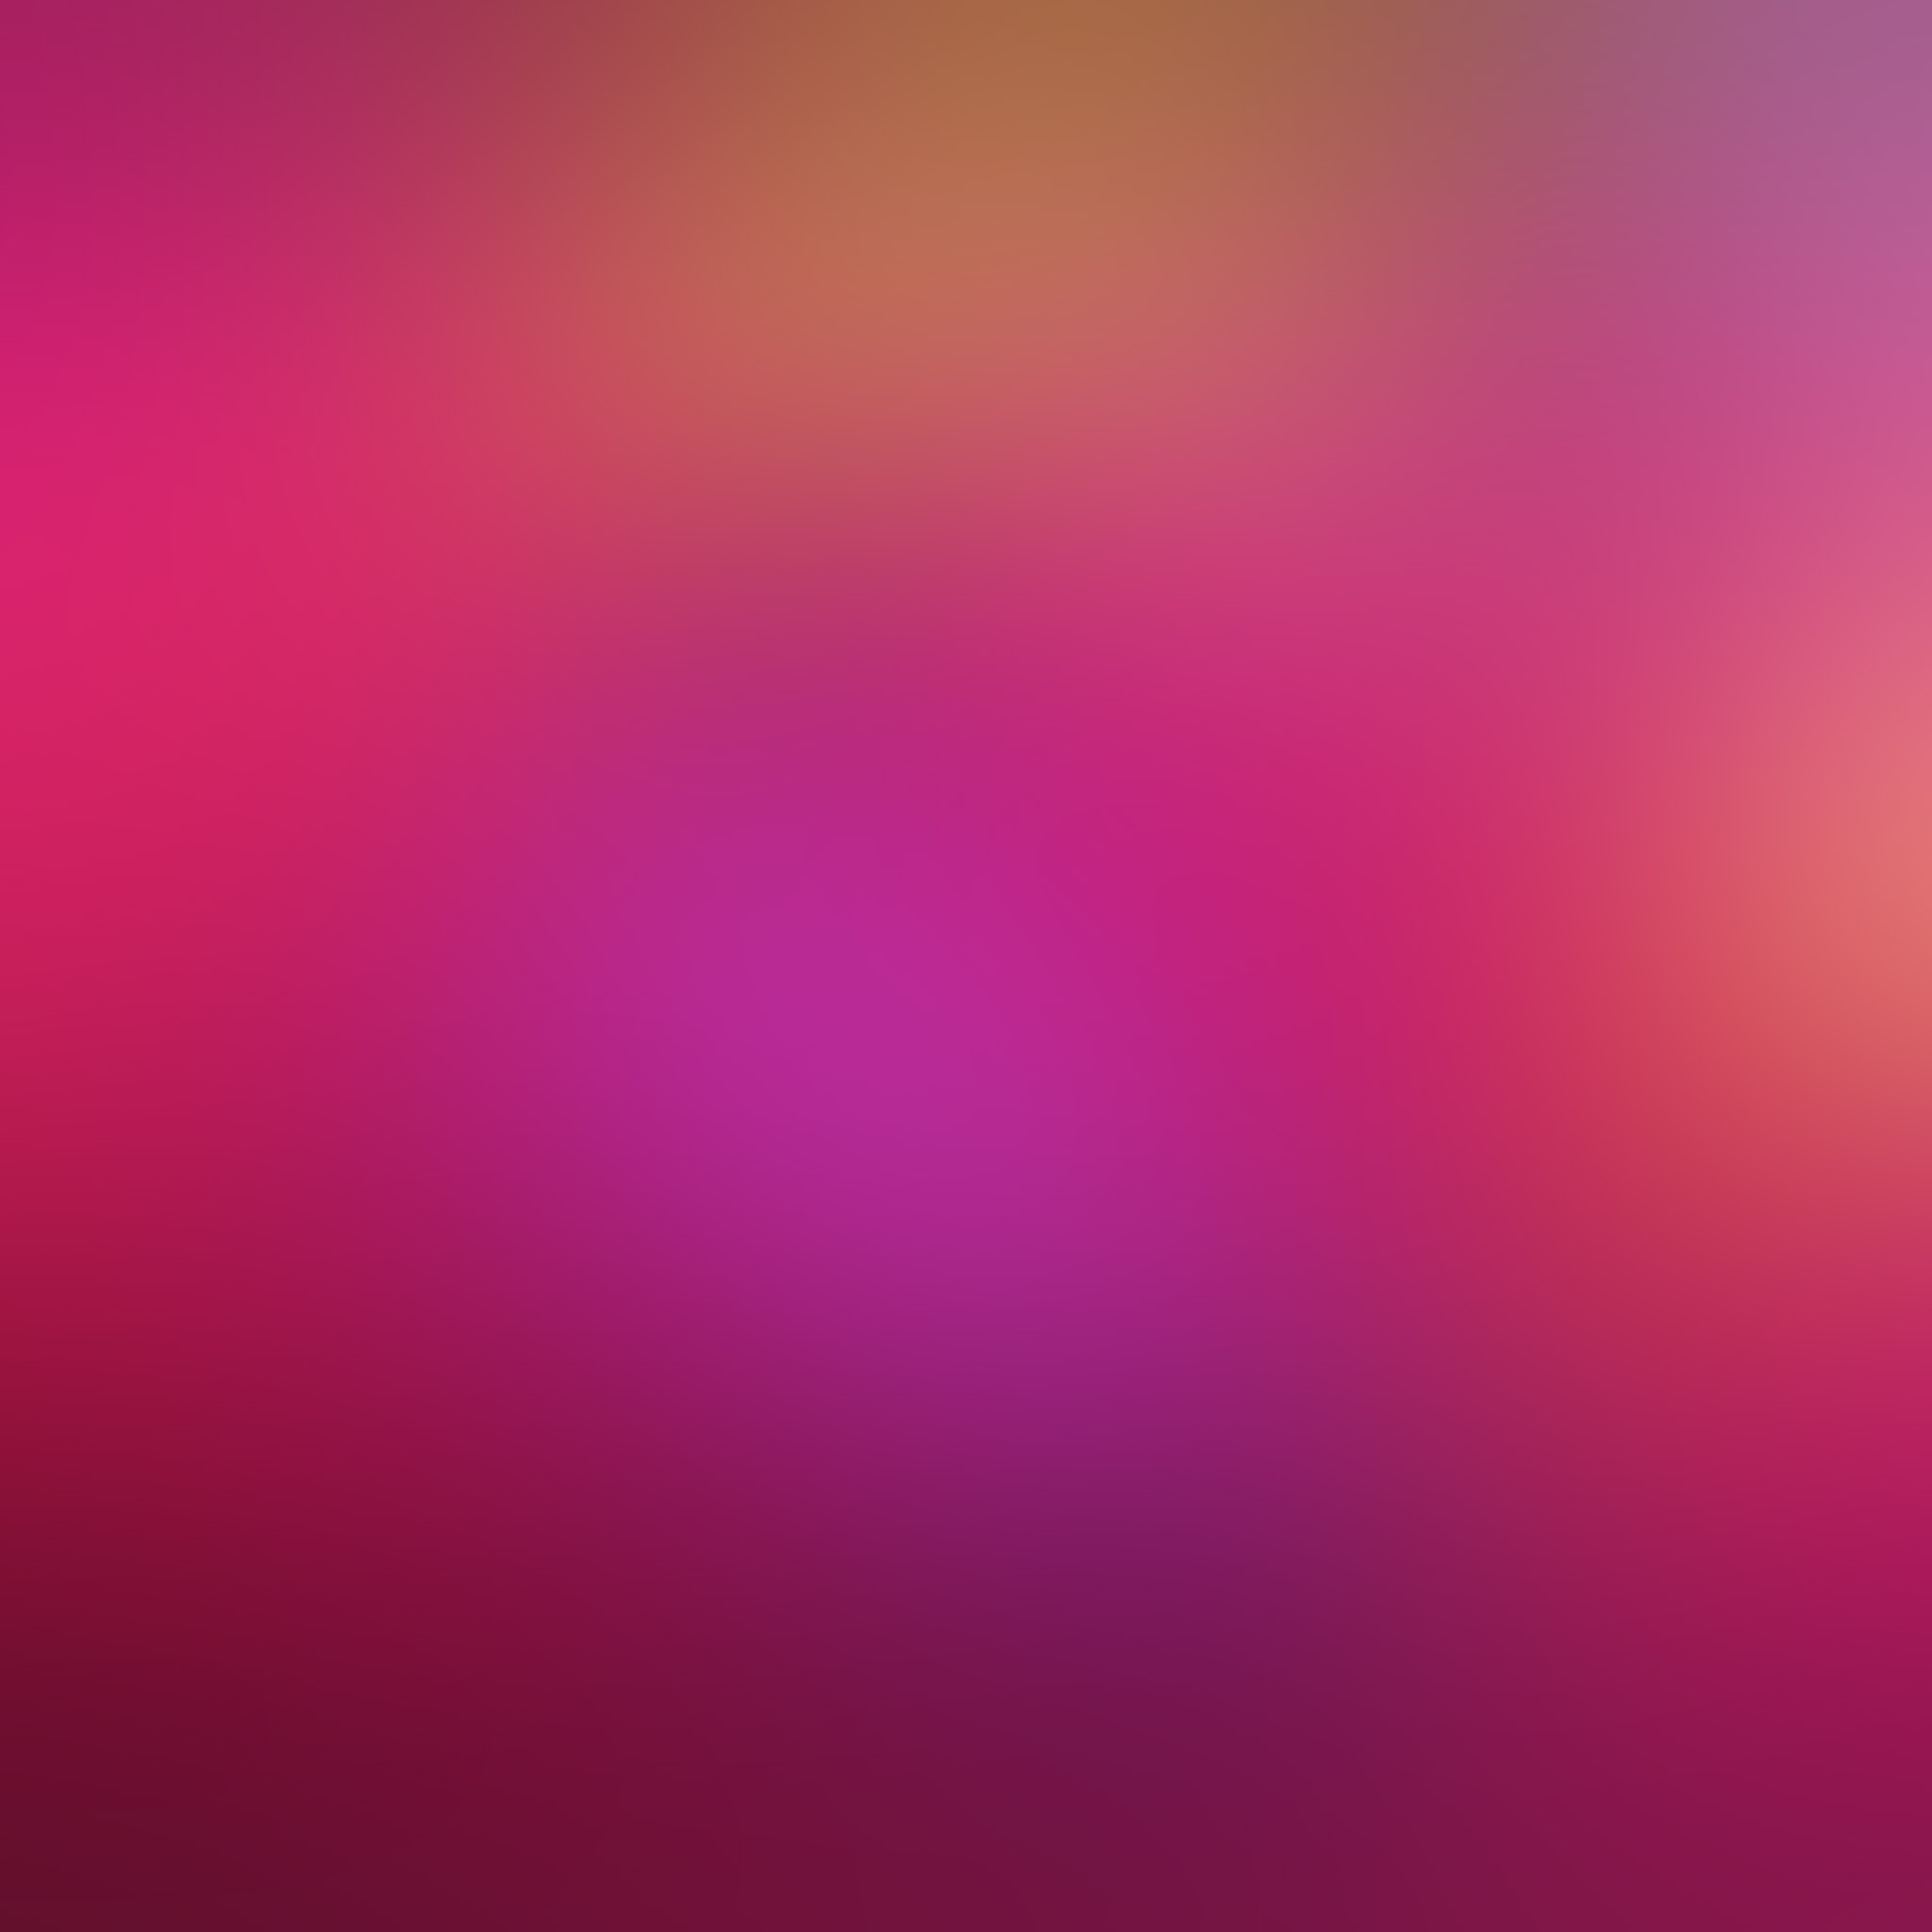 Pink Wallpaper For Iphone 6 Plus Wallpapers